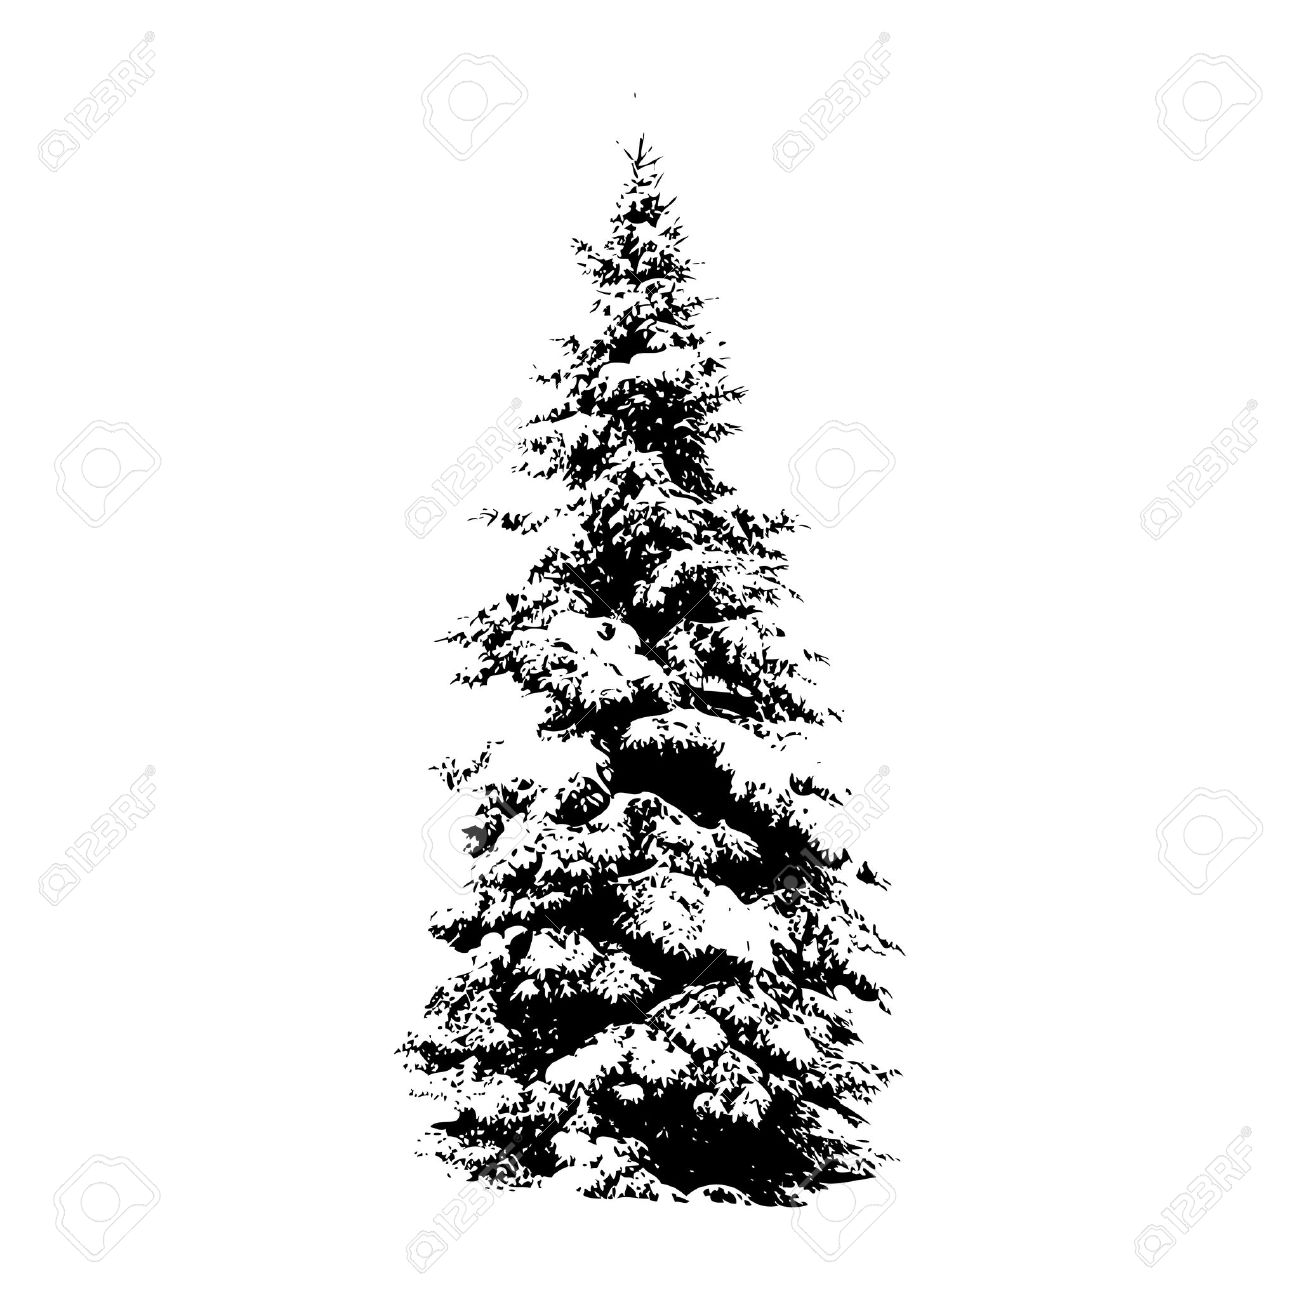 Pine Tree Vector Stock Photos & Pictures. Royalty Free Pine Tree ...